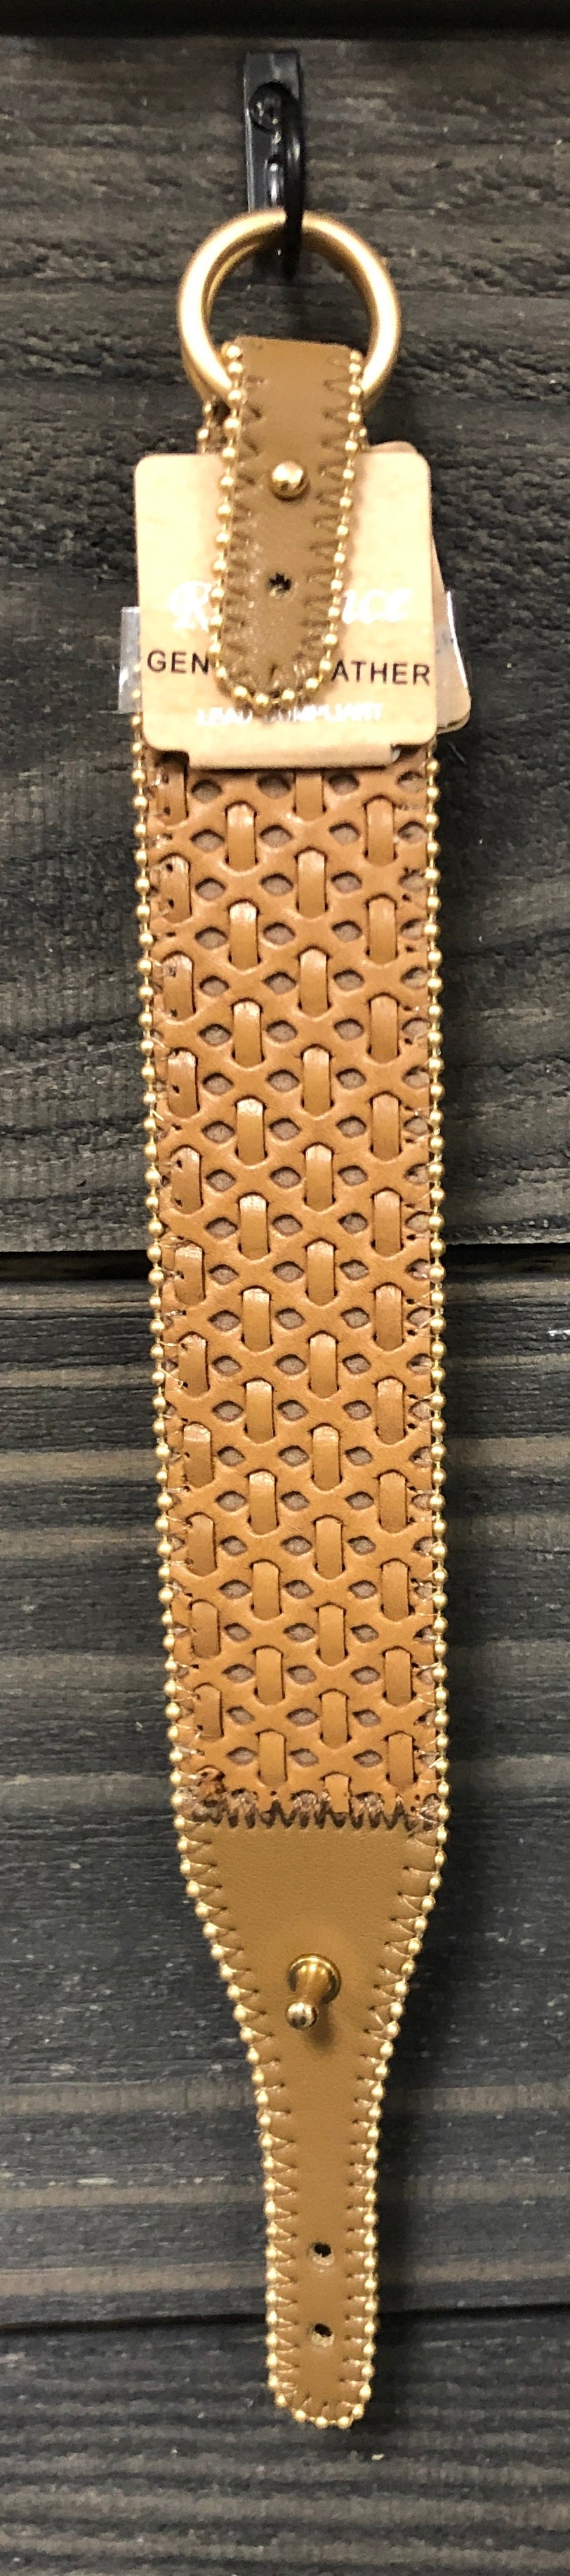 Brown Leather Woven Bracelet with Buckle Clasp